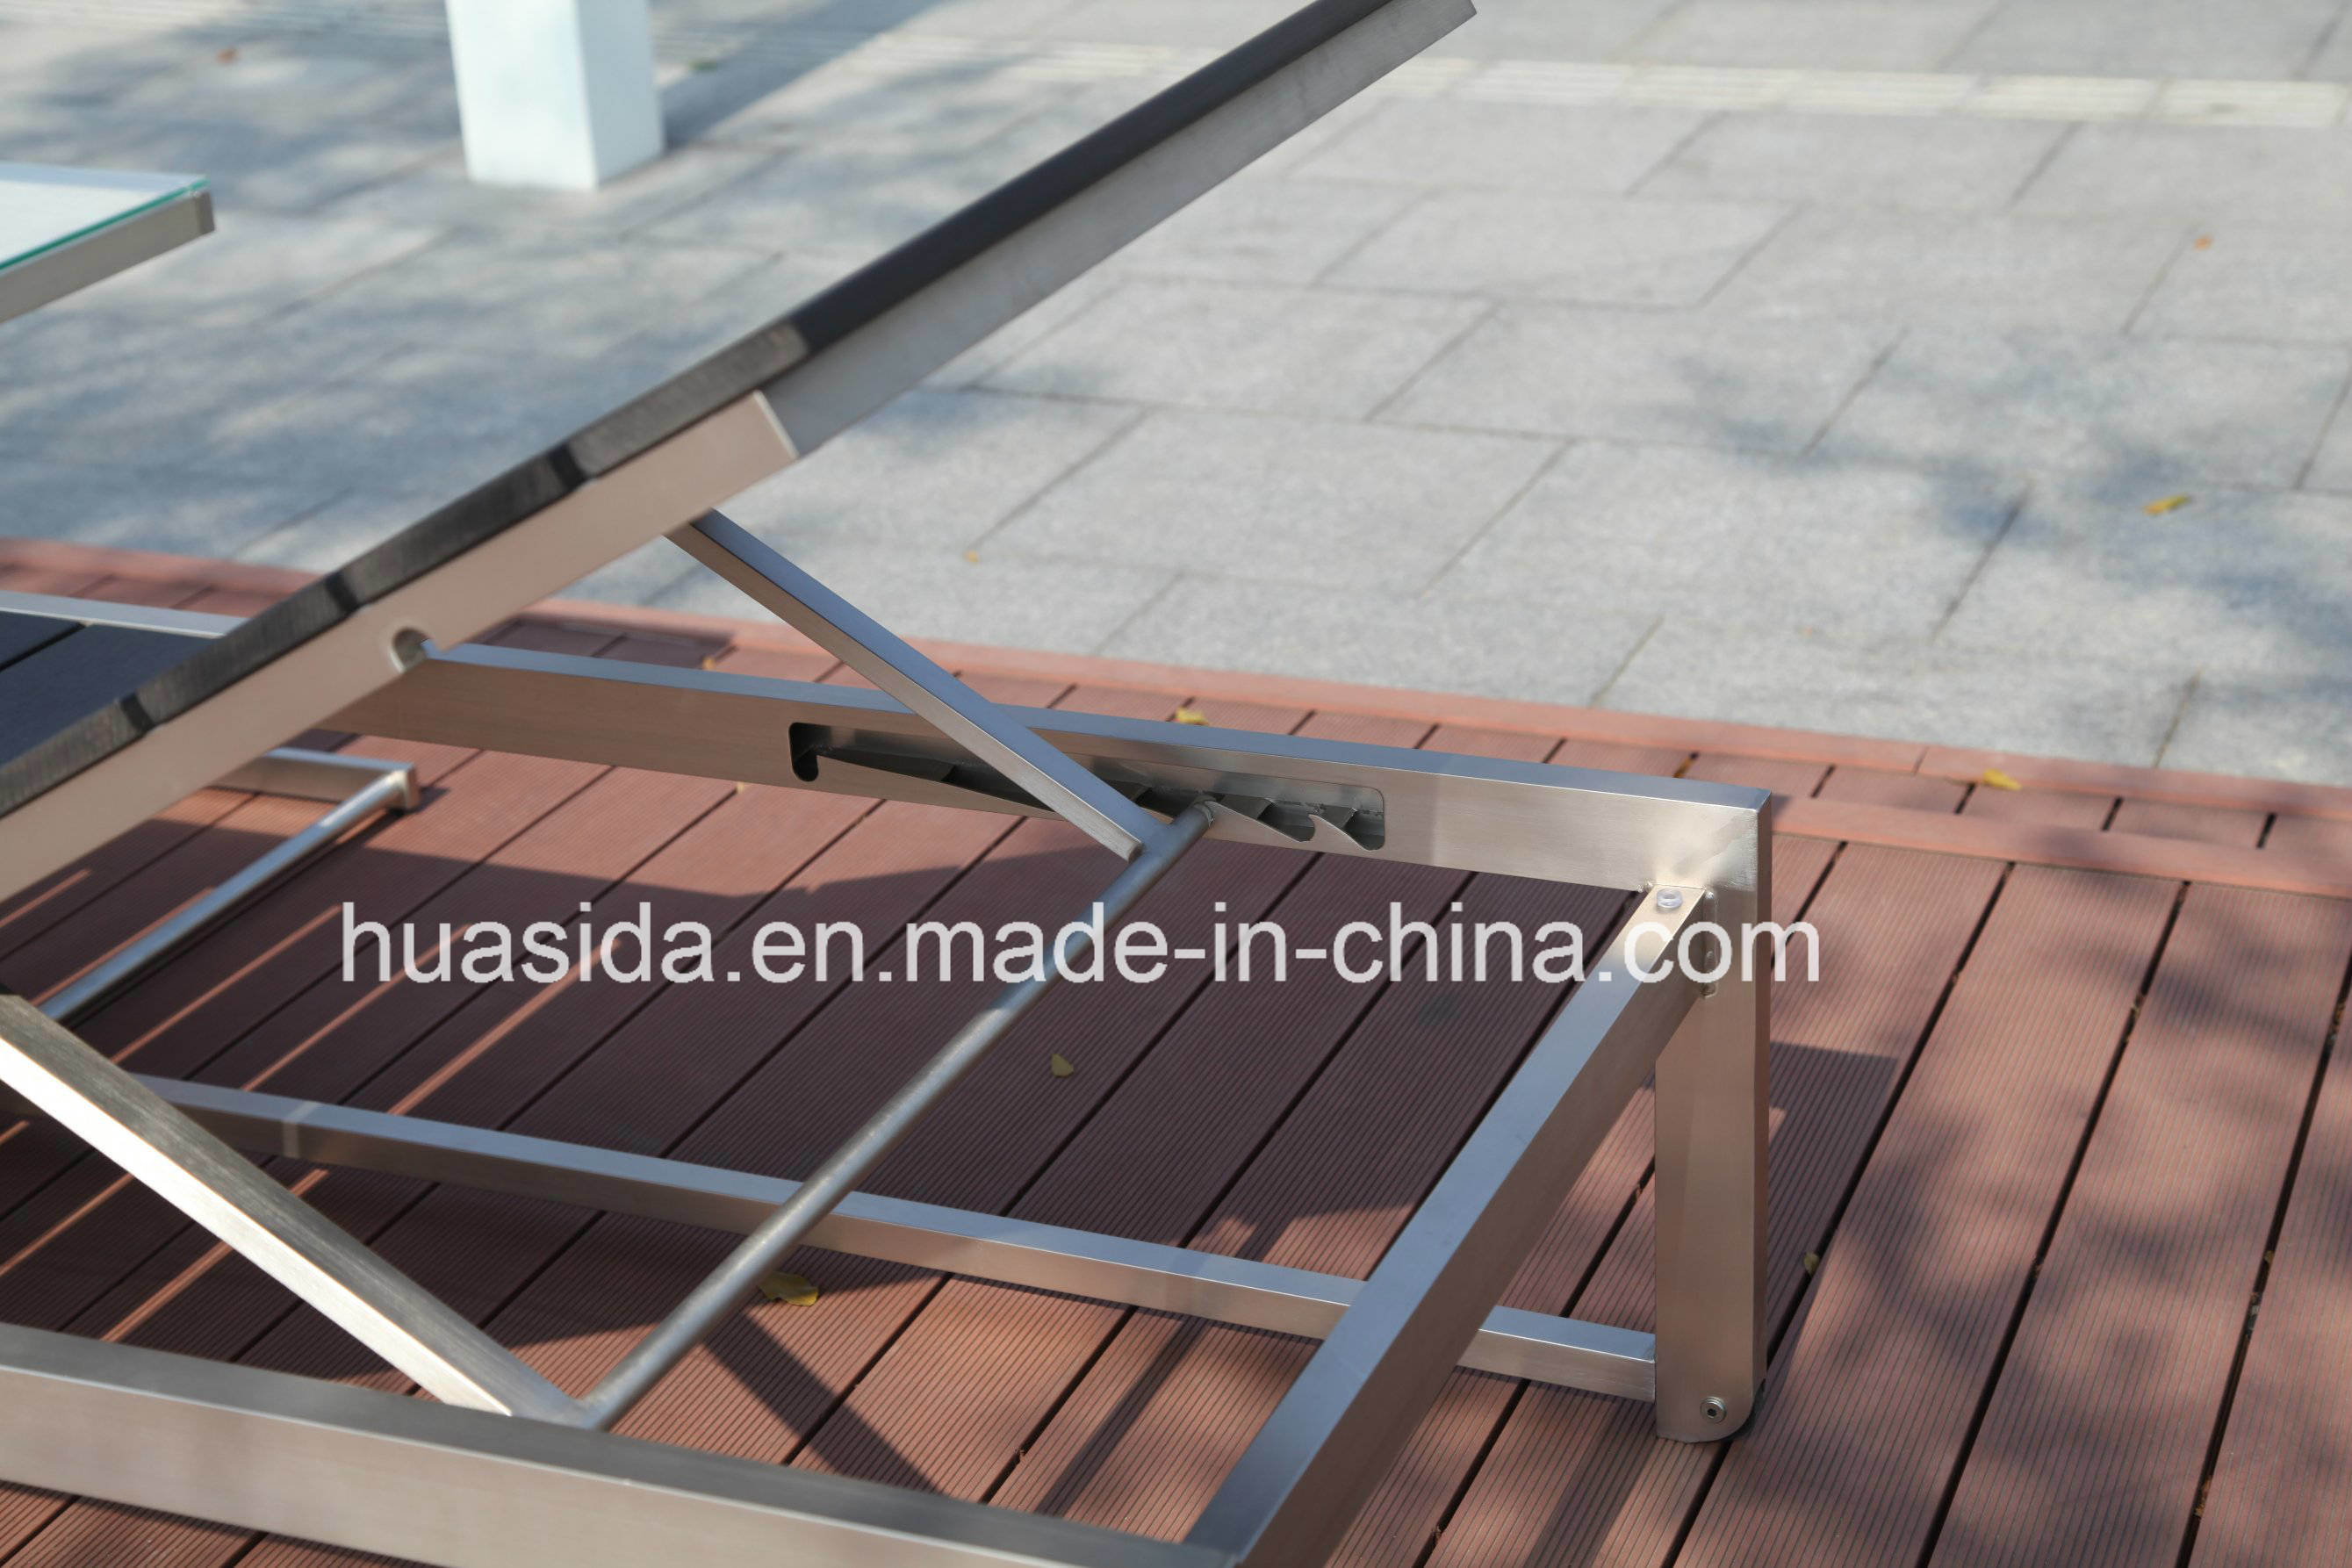 Stainless Steel Poly Wood Lounger Using in Beach Garden Swmming Pool